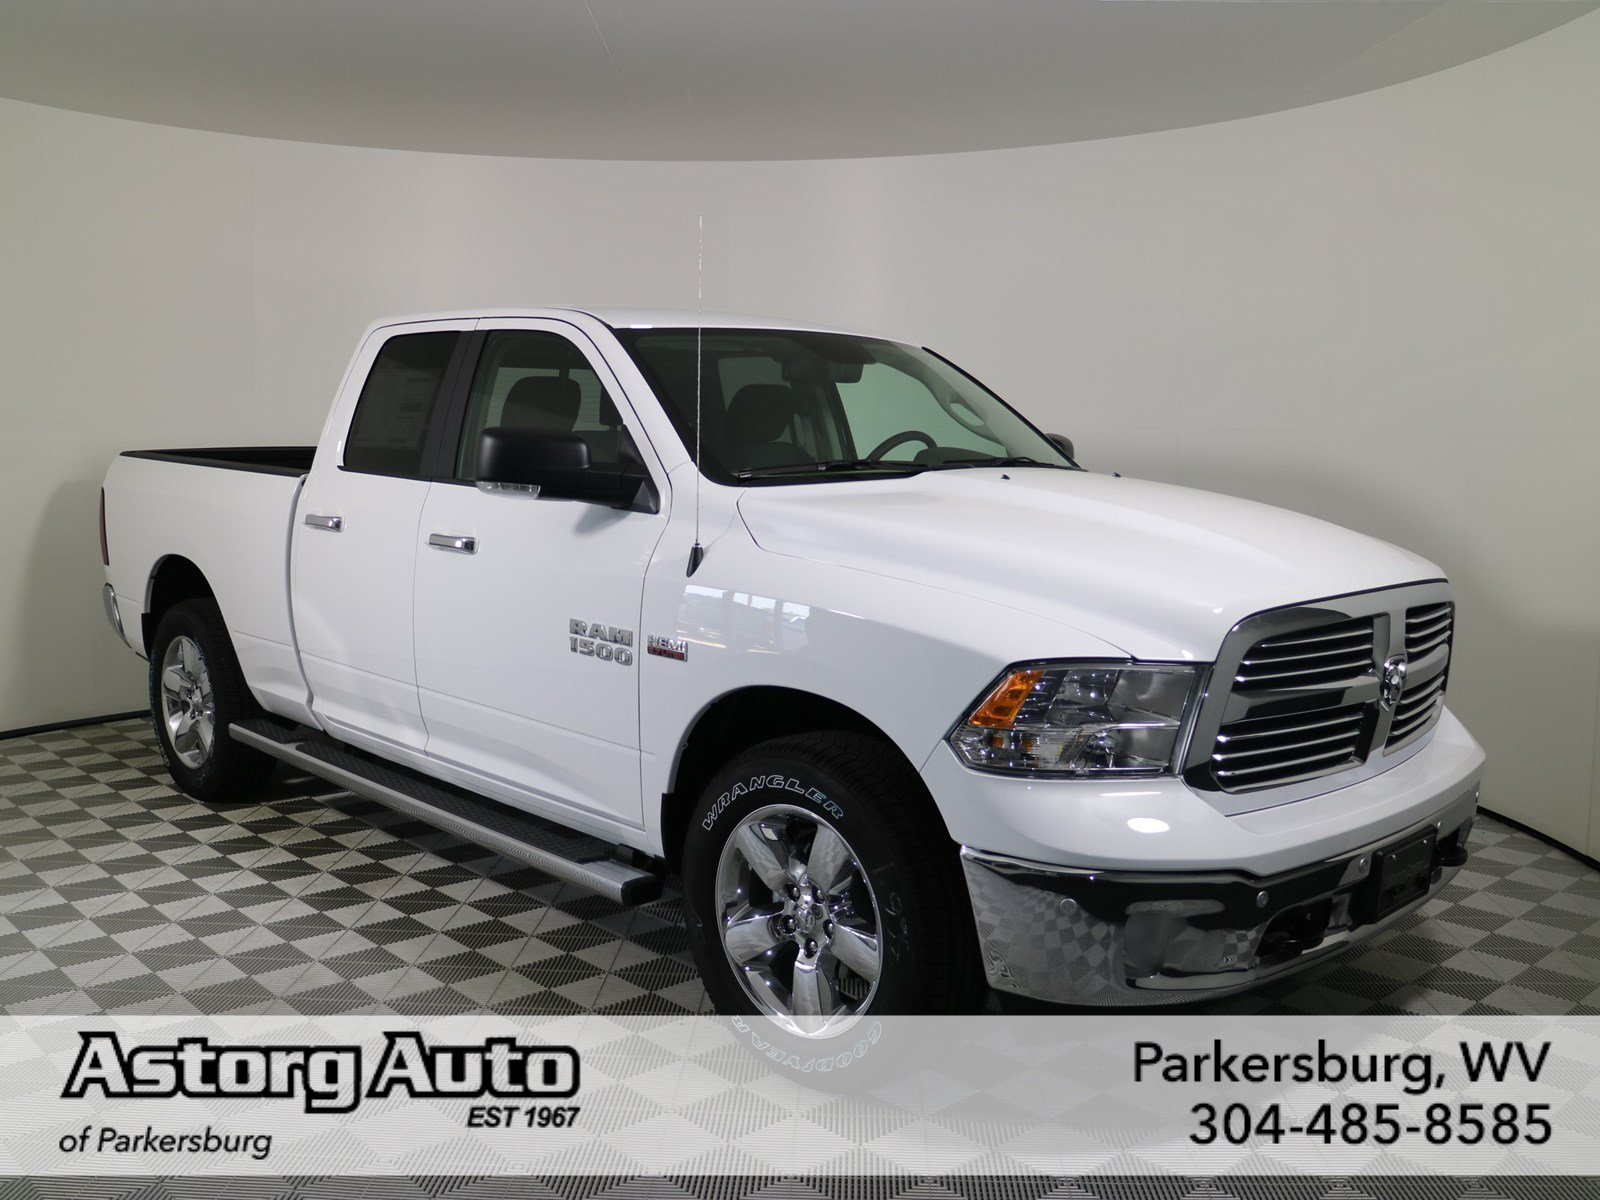 Astorg dodge parkersburg wv 2018 dodge reviews for Astorg motor company parkersburg wv